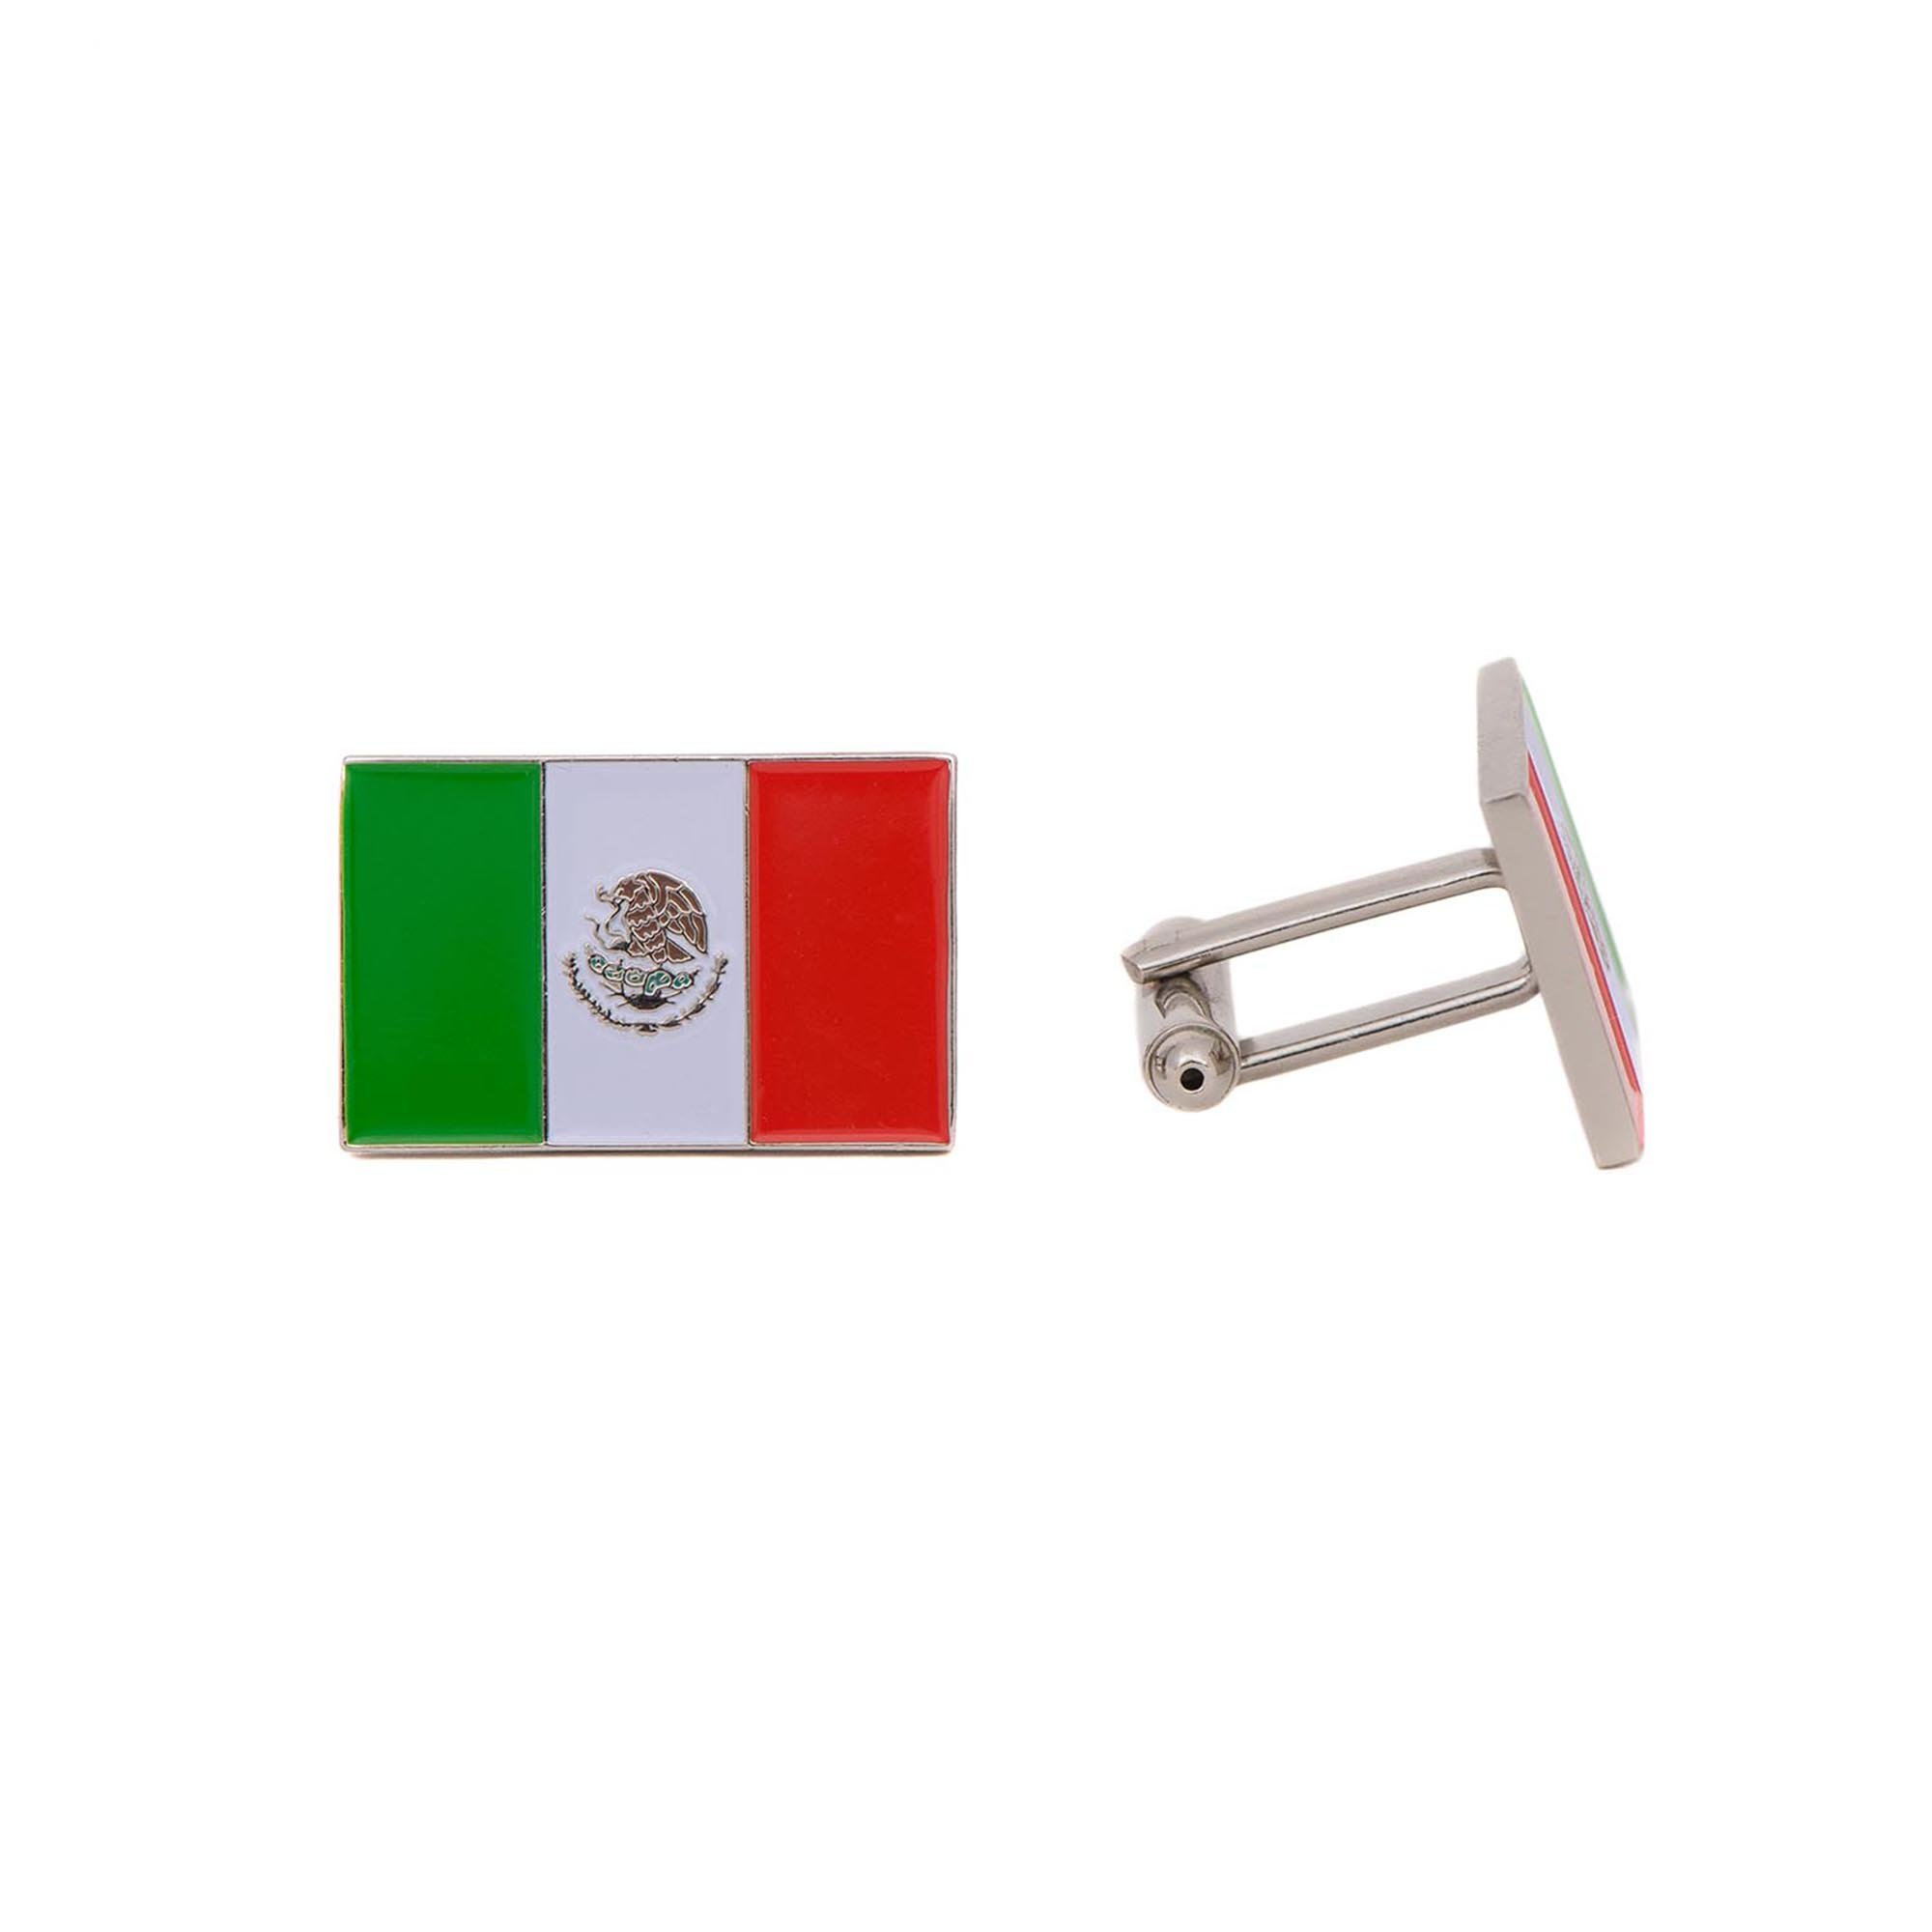 Desert Cactus Mexico Rectangle Country Flag Cufflinks Formal Wear Blazer For French Cuff Shirt Mexican